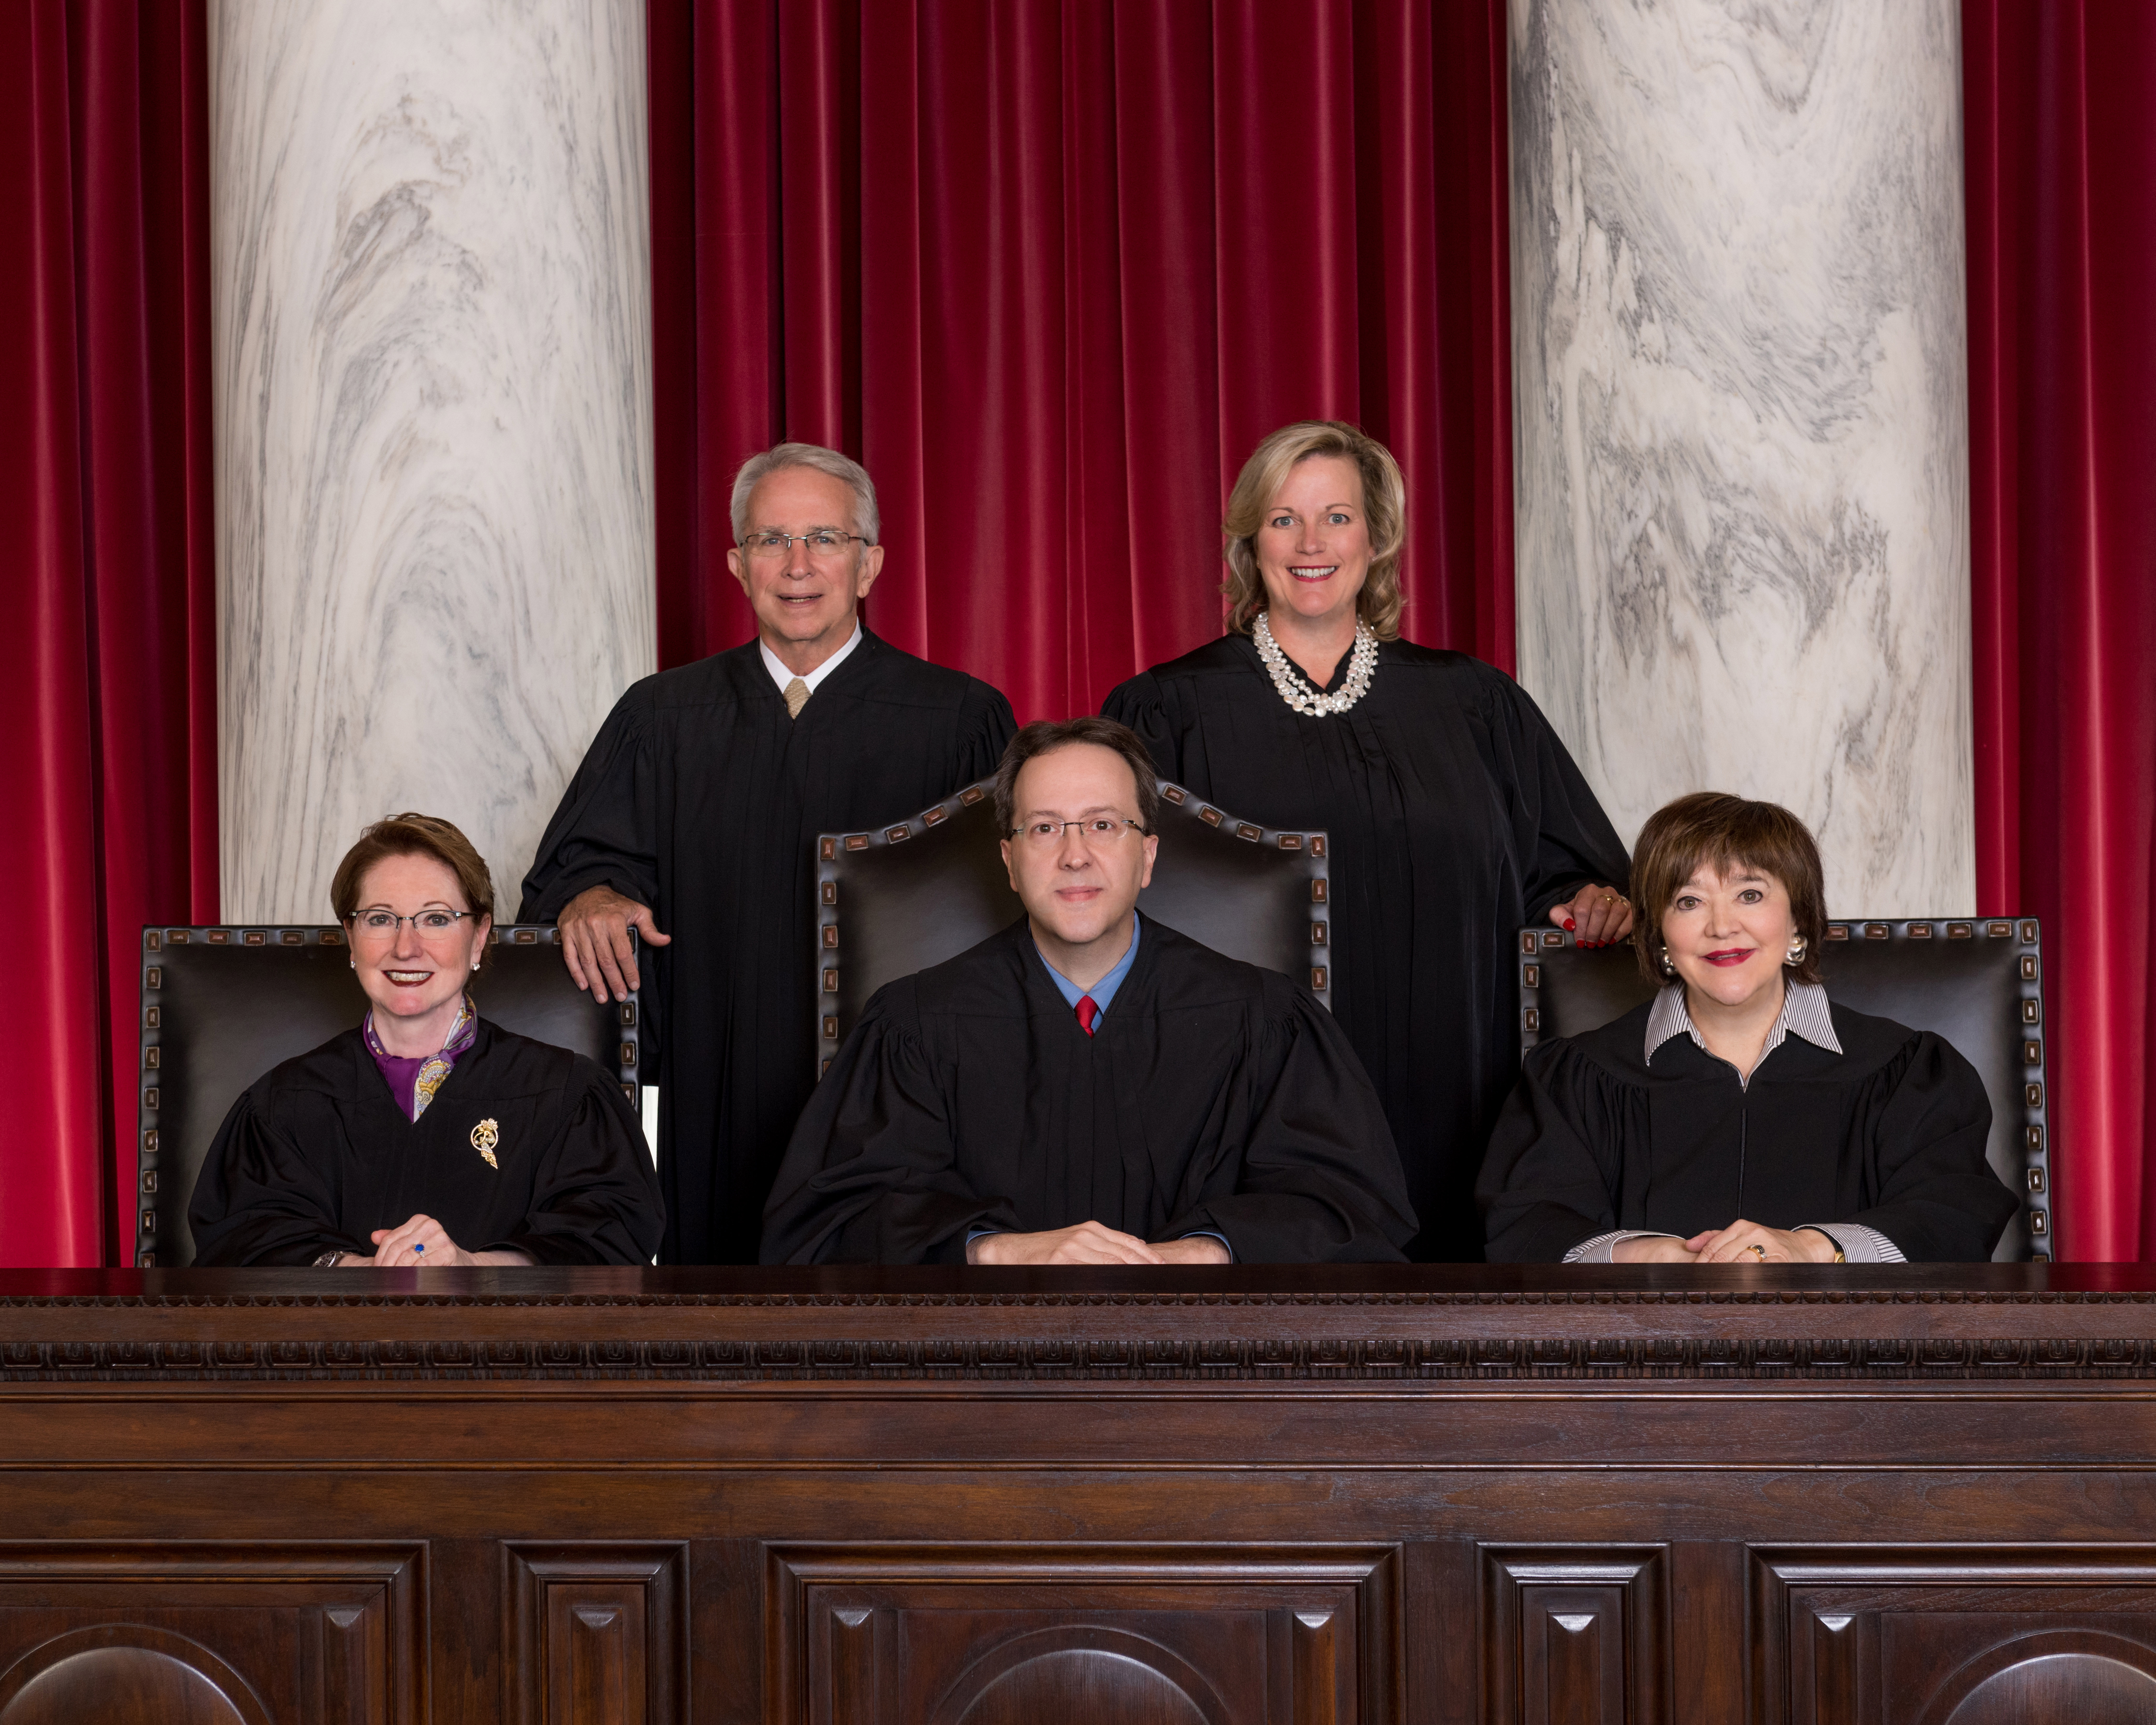 WV MetroNews – Supreme Court reverses itself in royalties ...